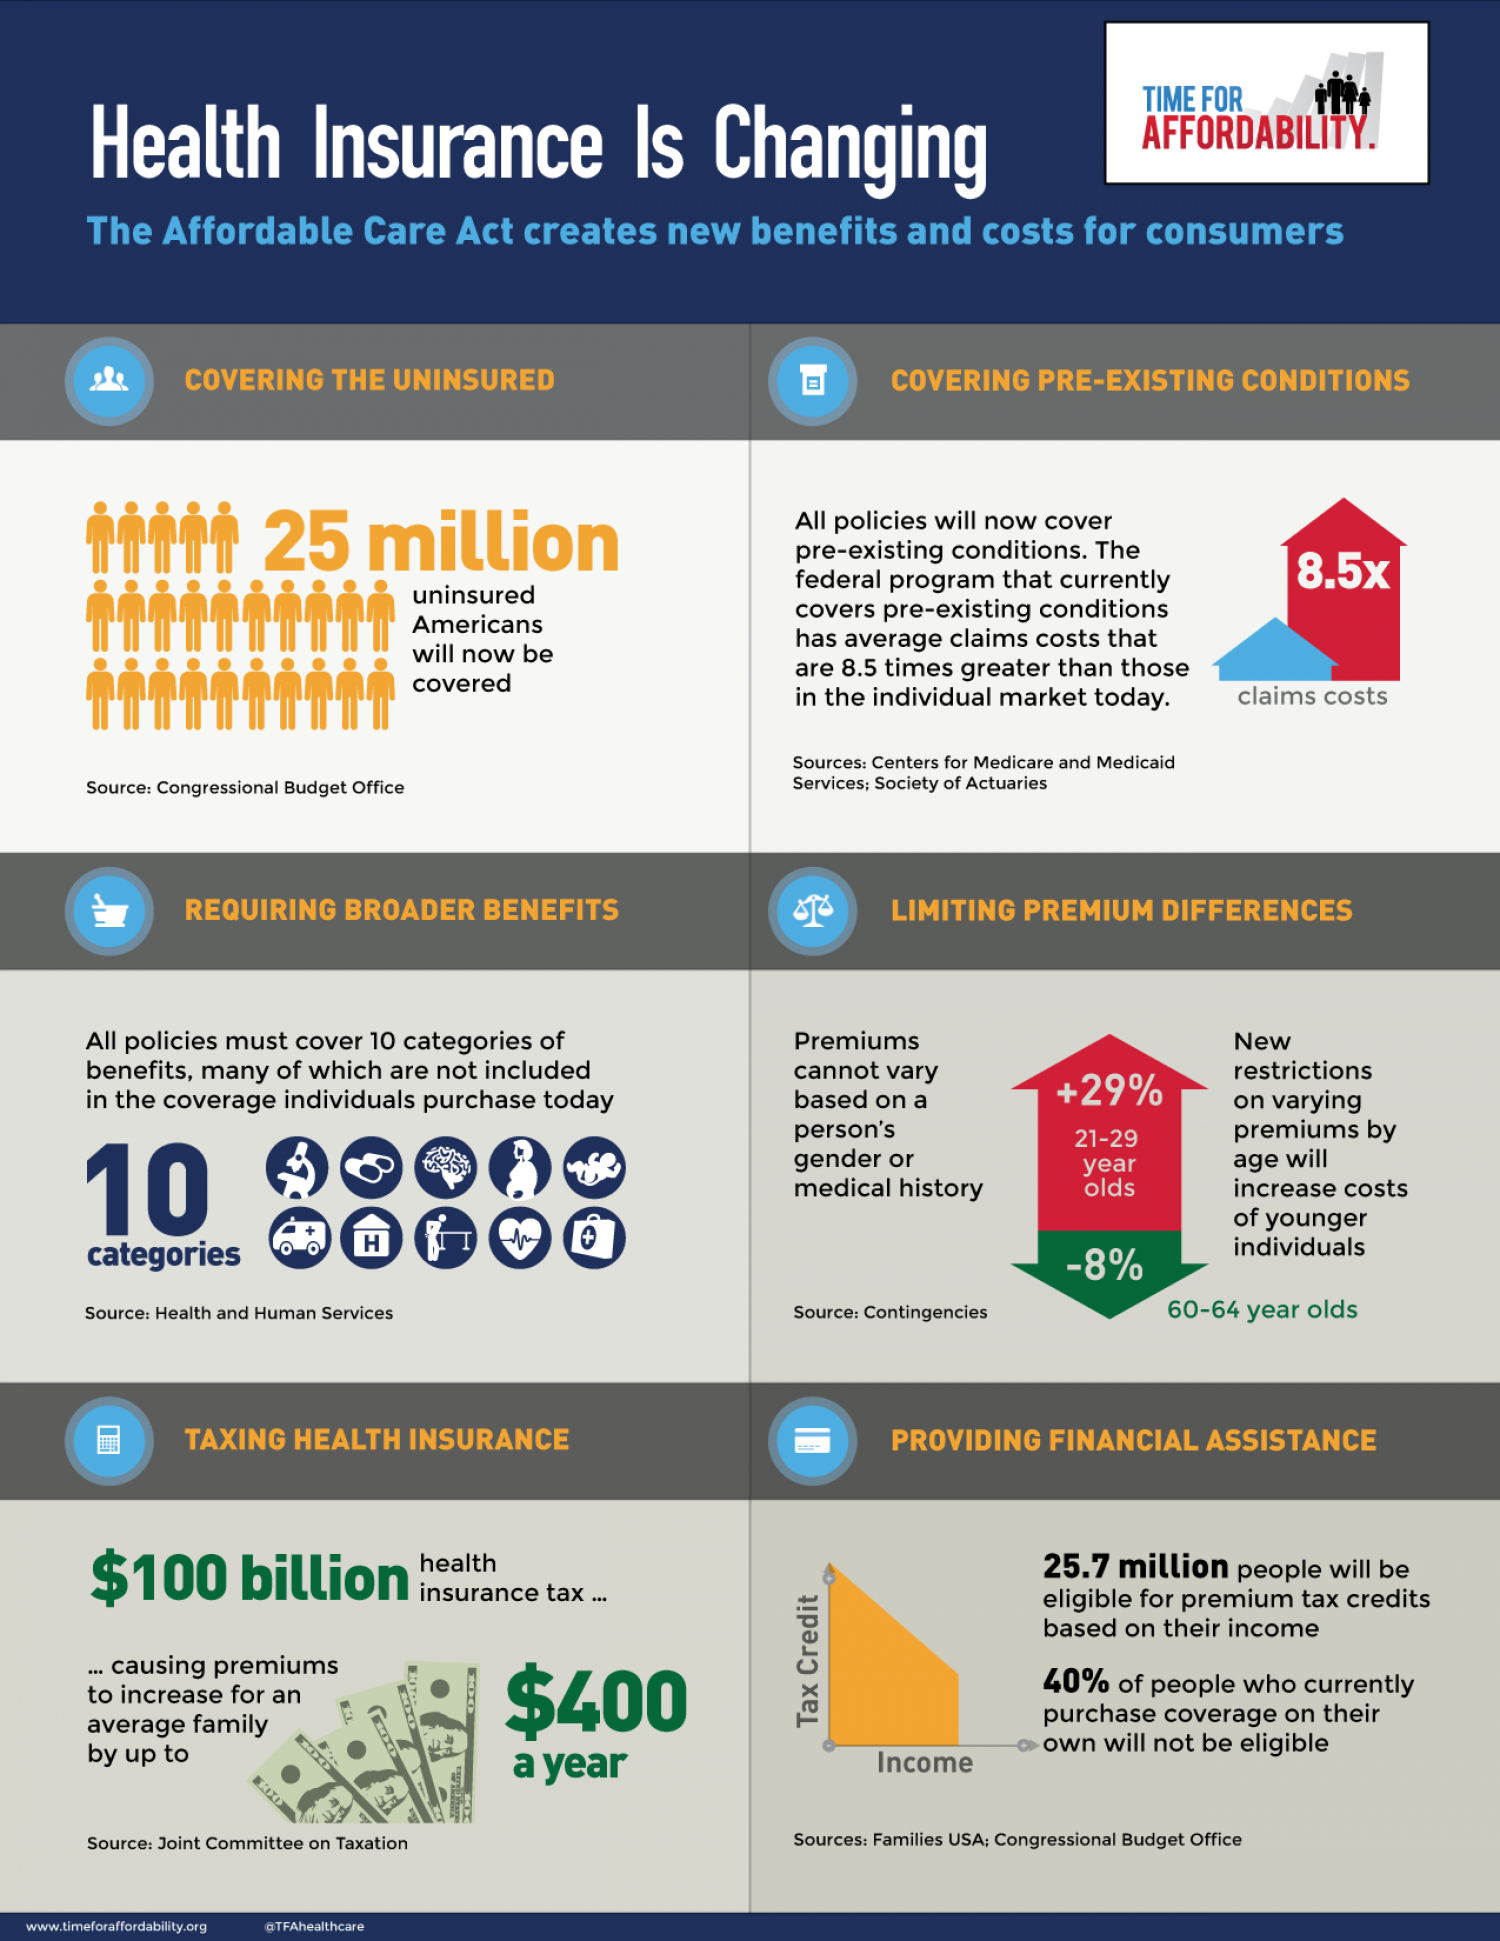 Health Insurance is Changing Infographic